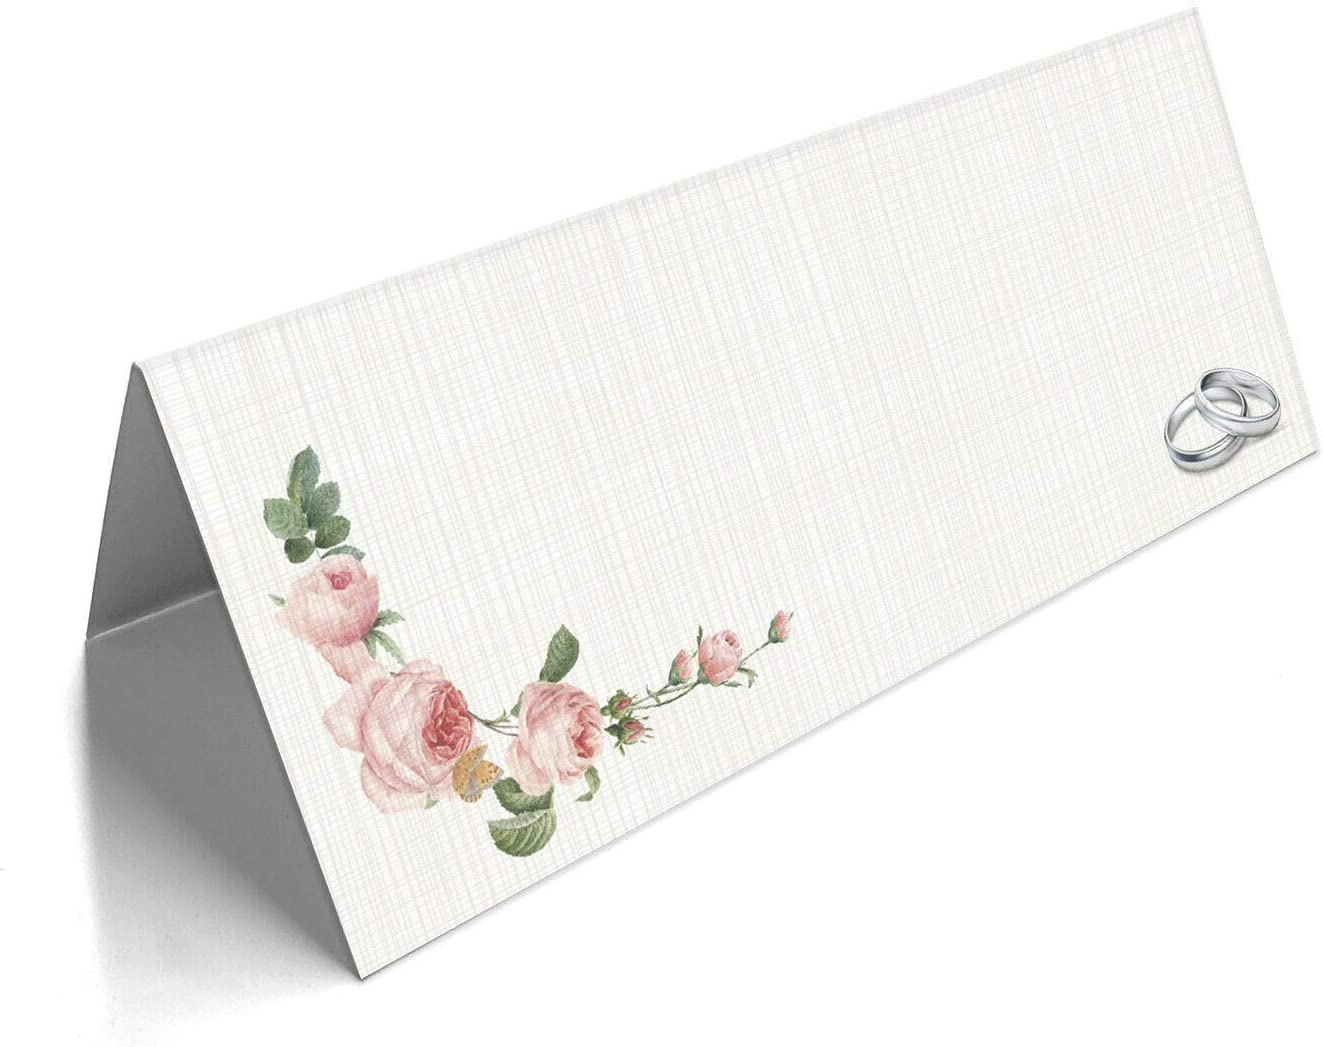 Table Design 1, Pack of 50 Name Place Cards Blank Plain for Wedding Christmas Conference Parties